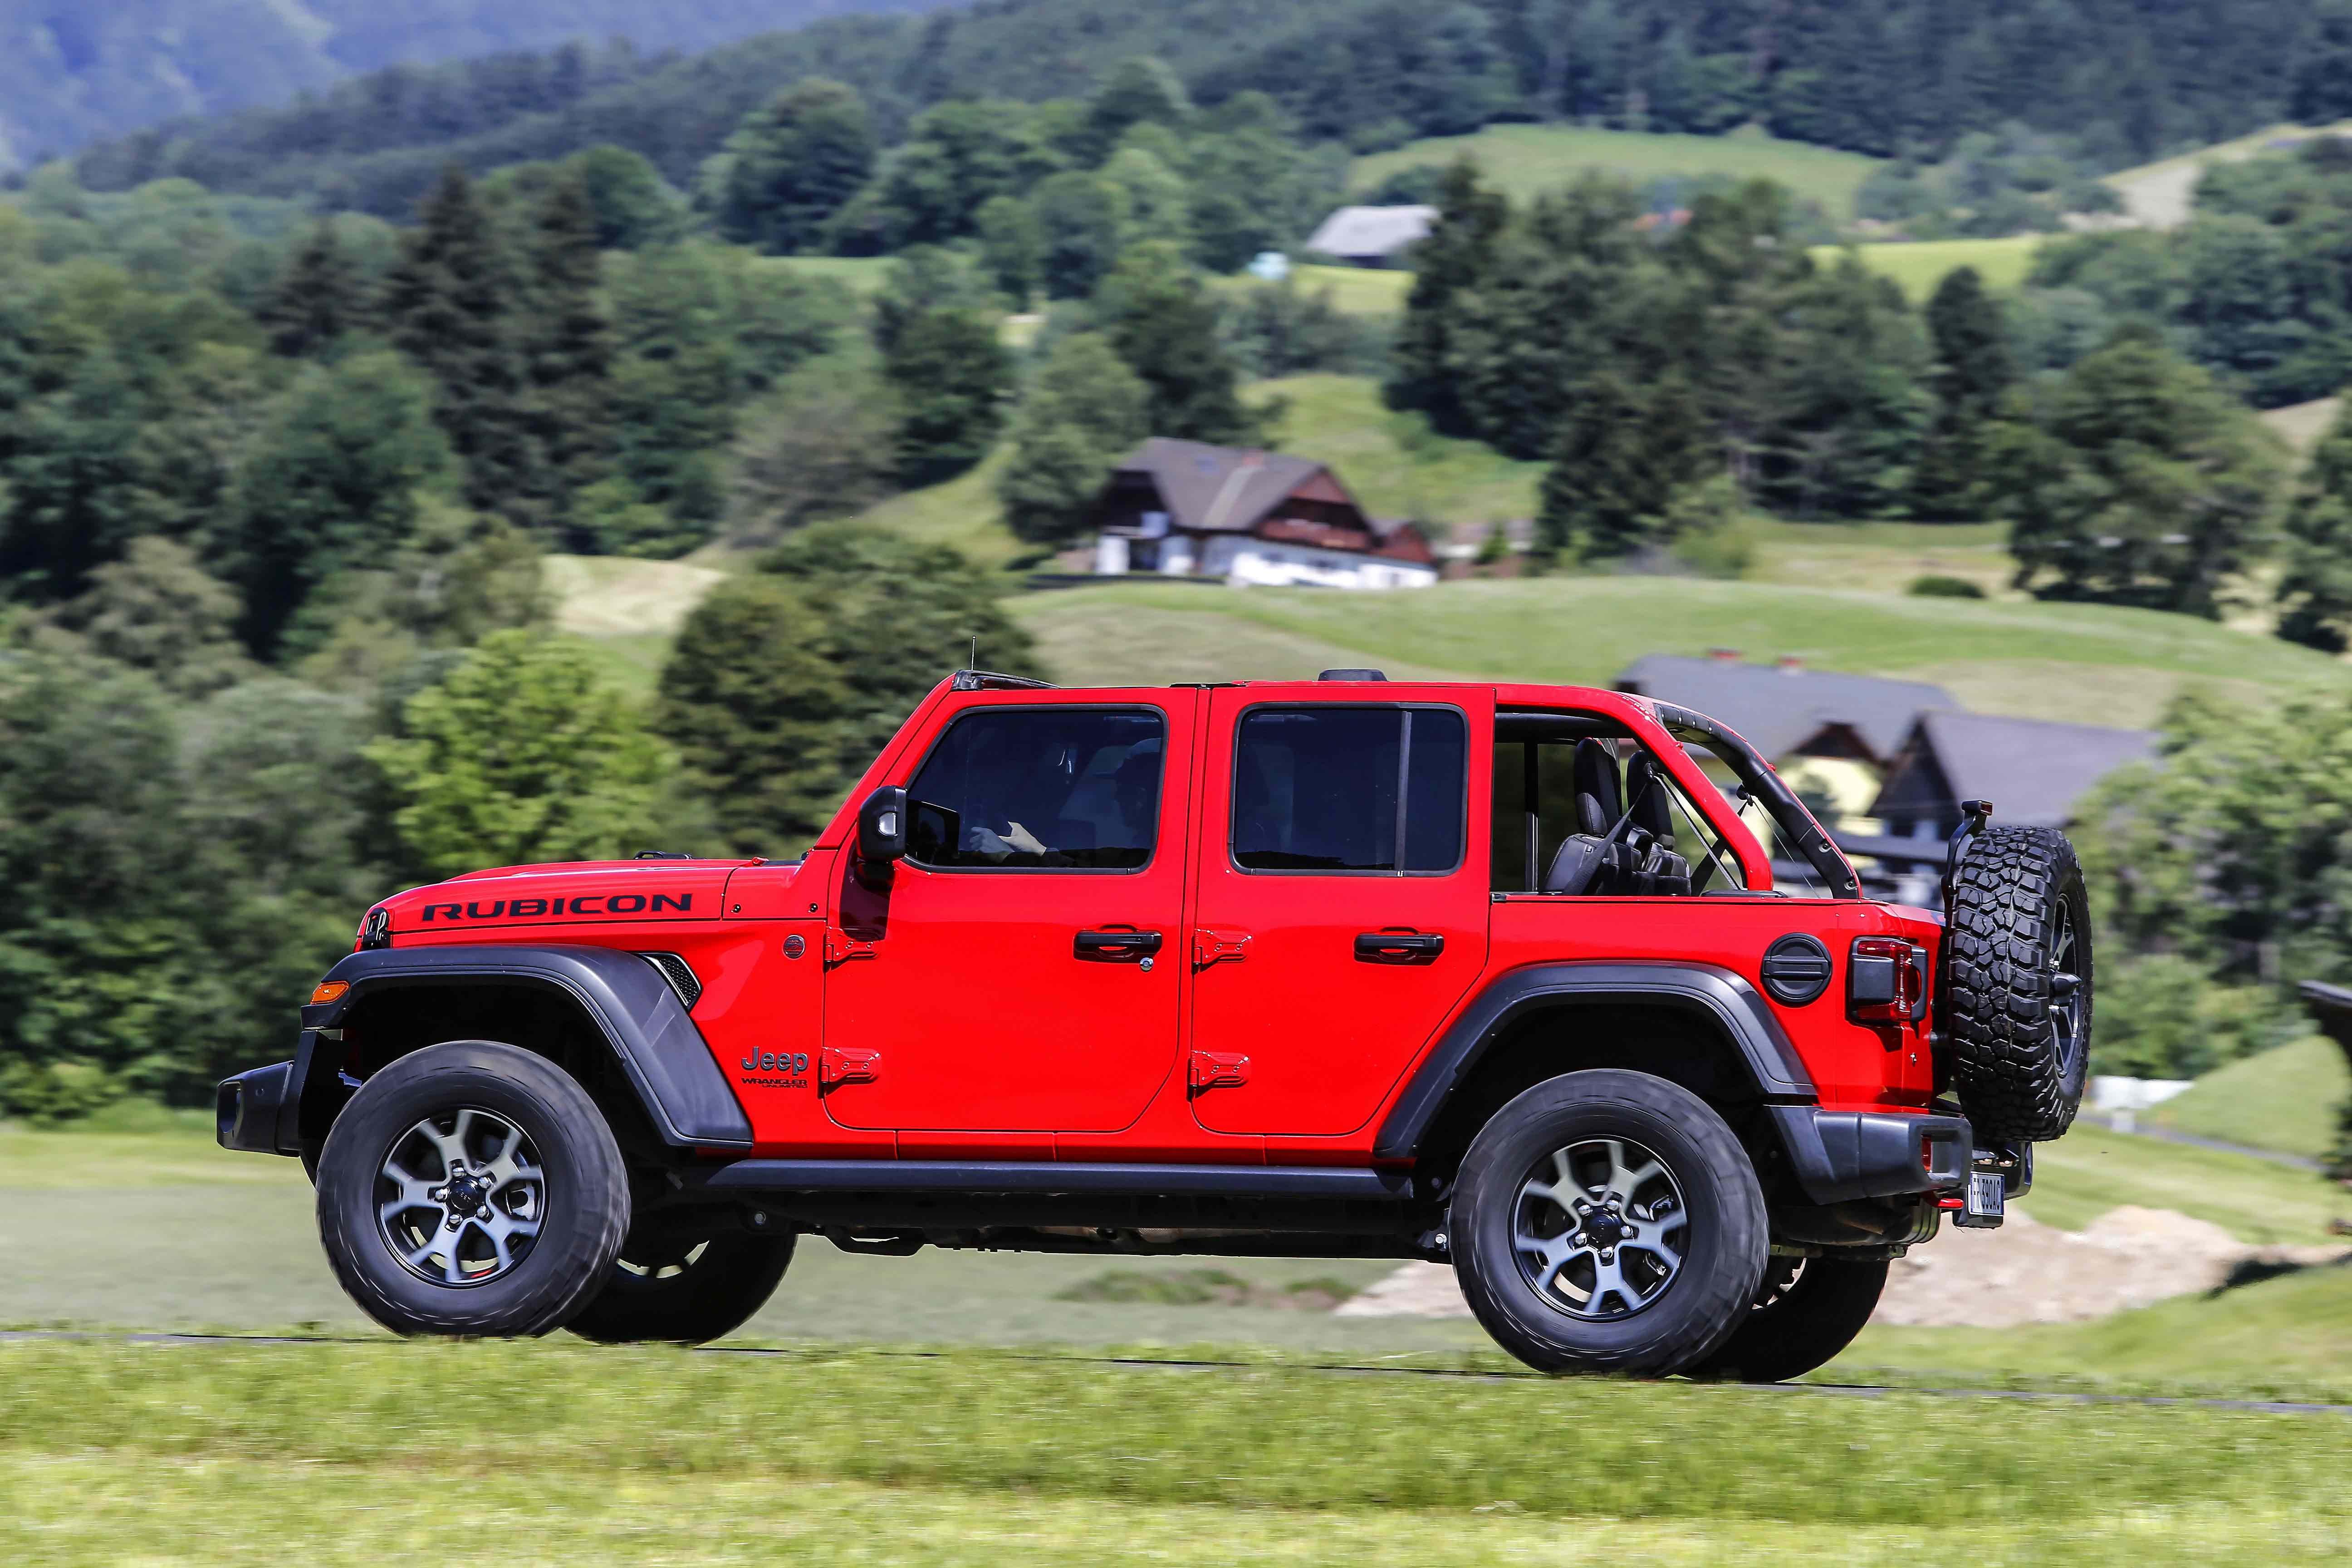 180703_Jeep_Rubicon_Unlimited_21.jpg